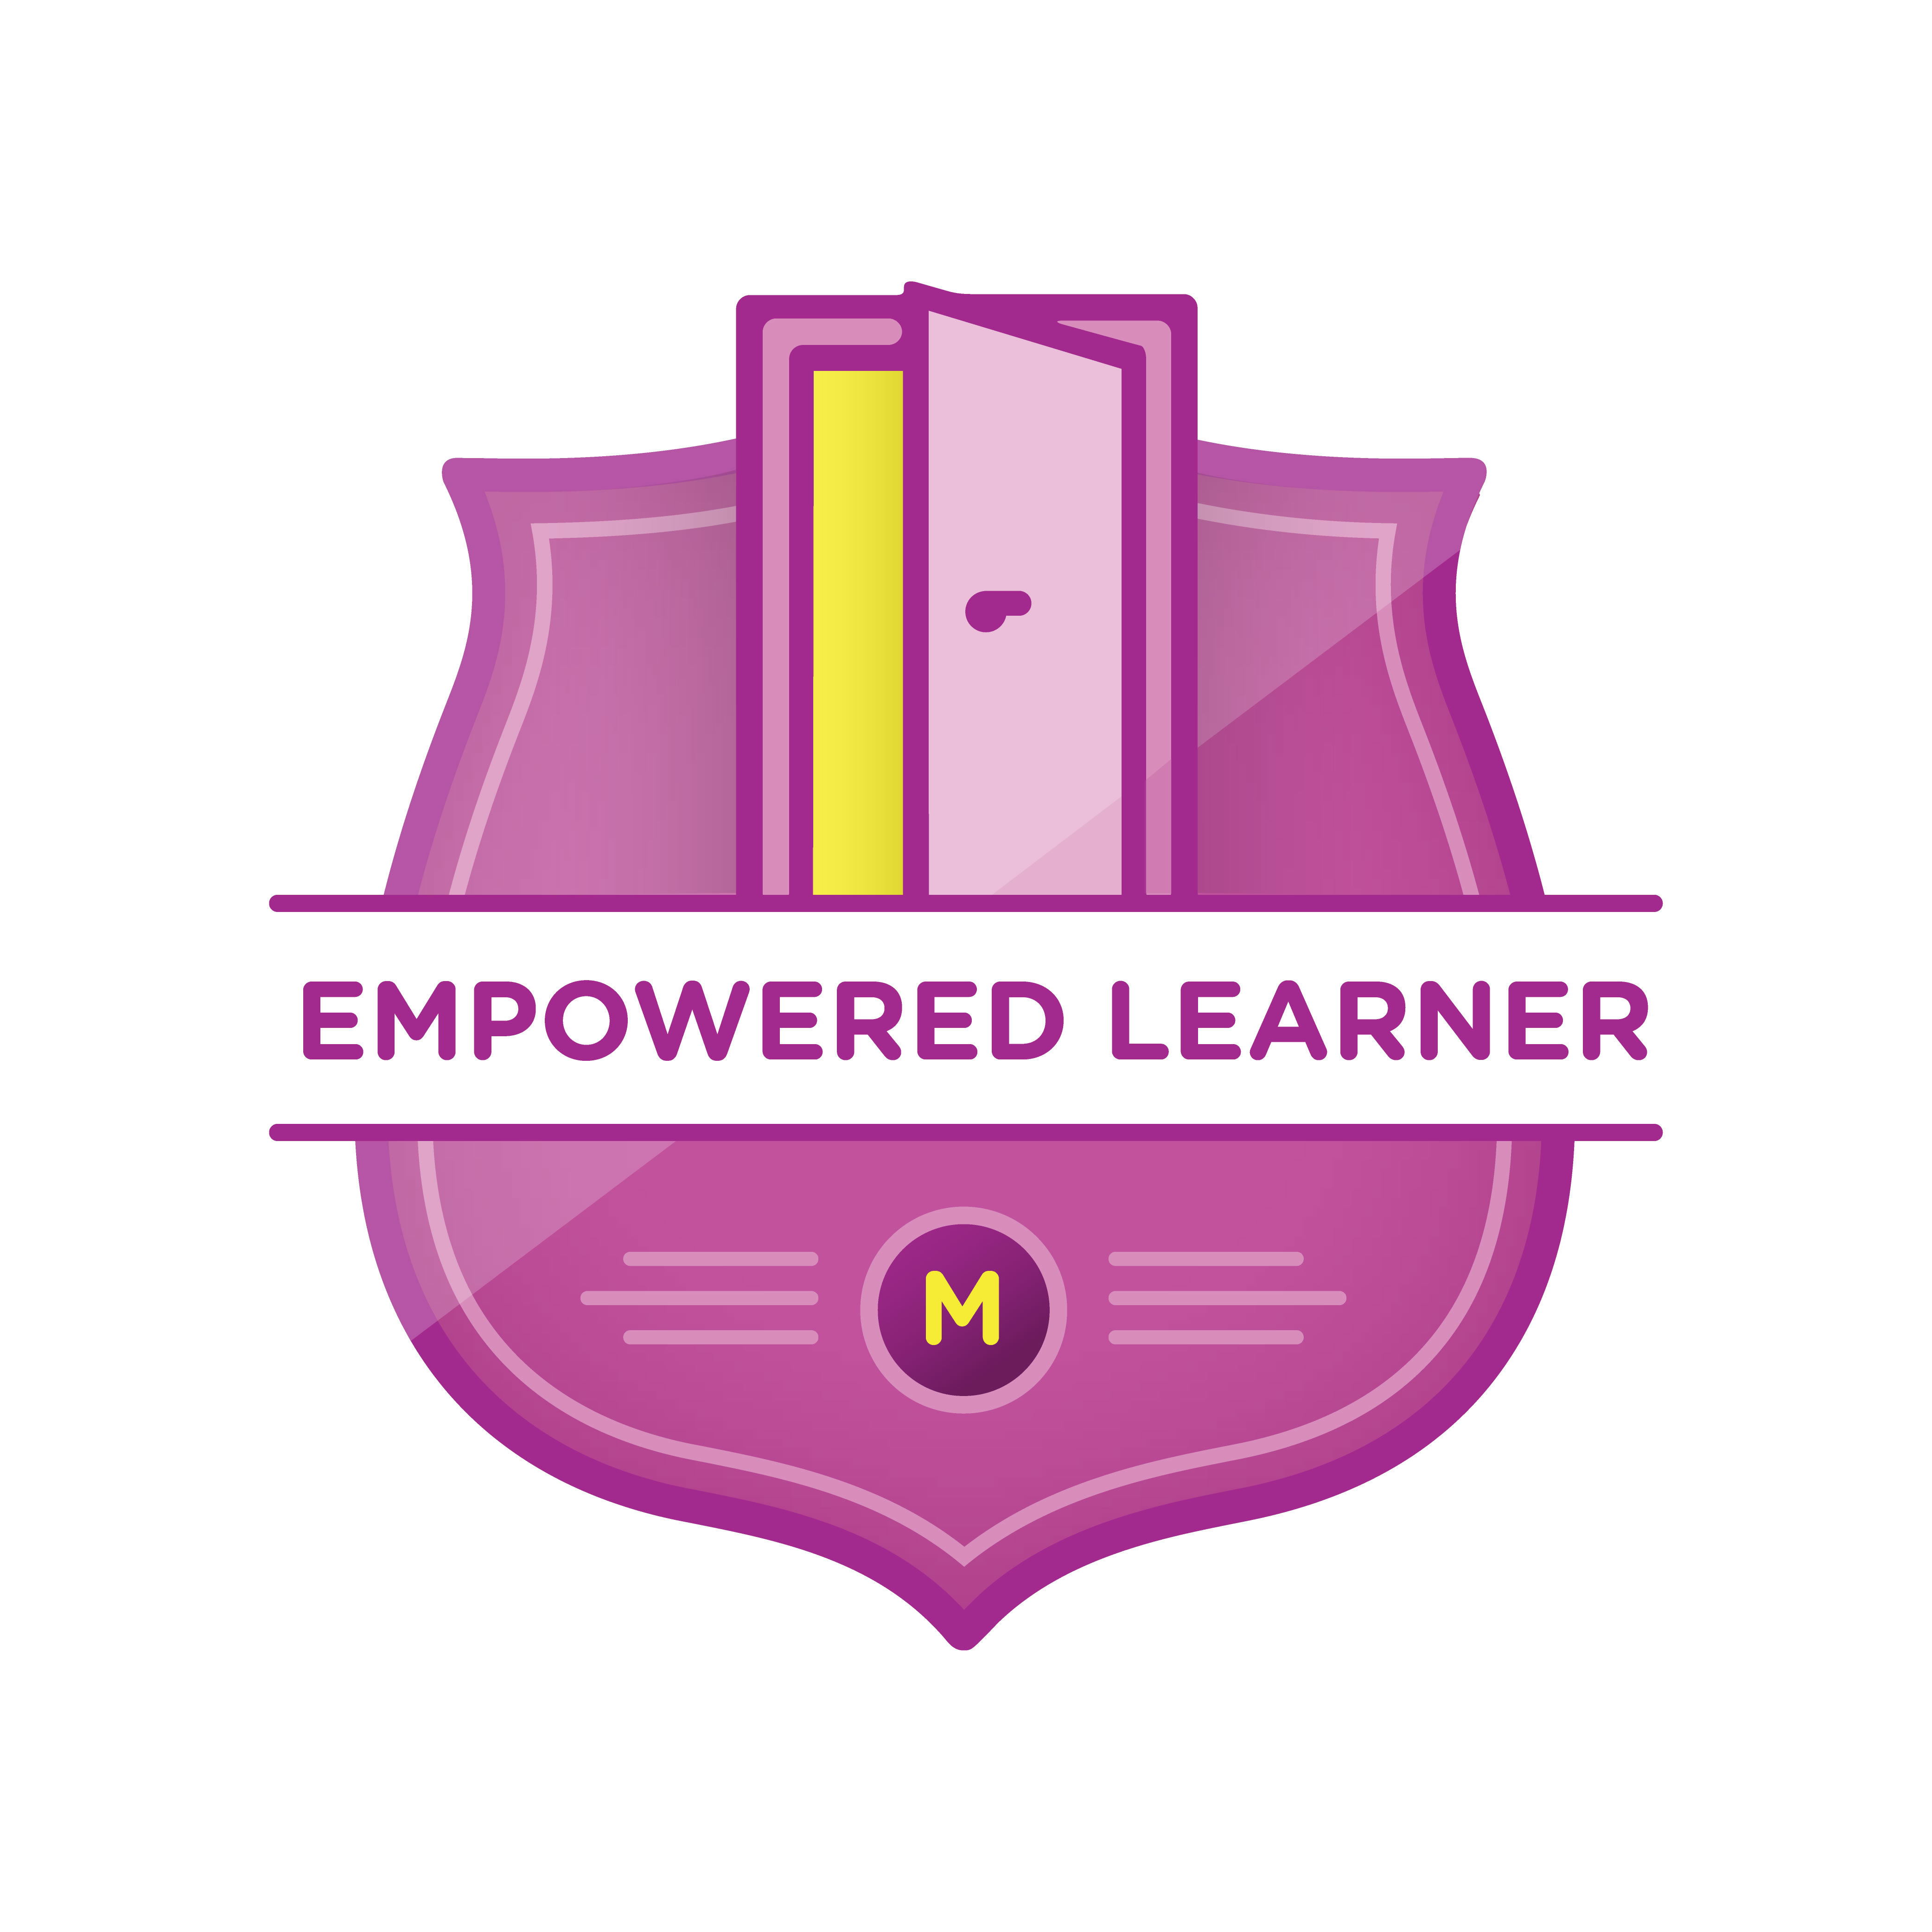 Empowered learner